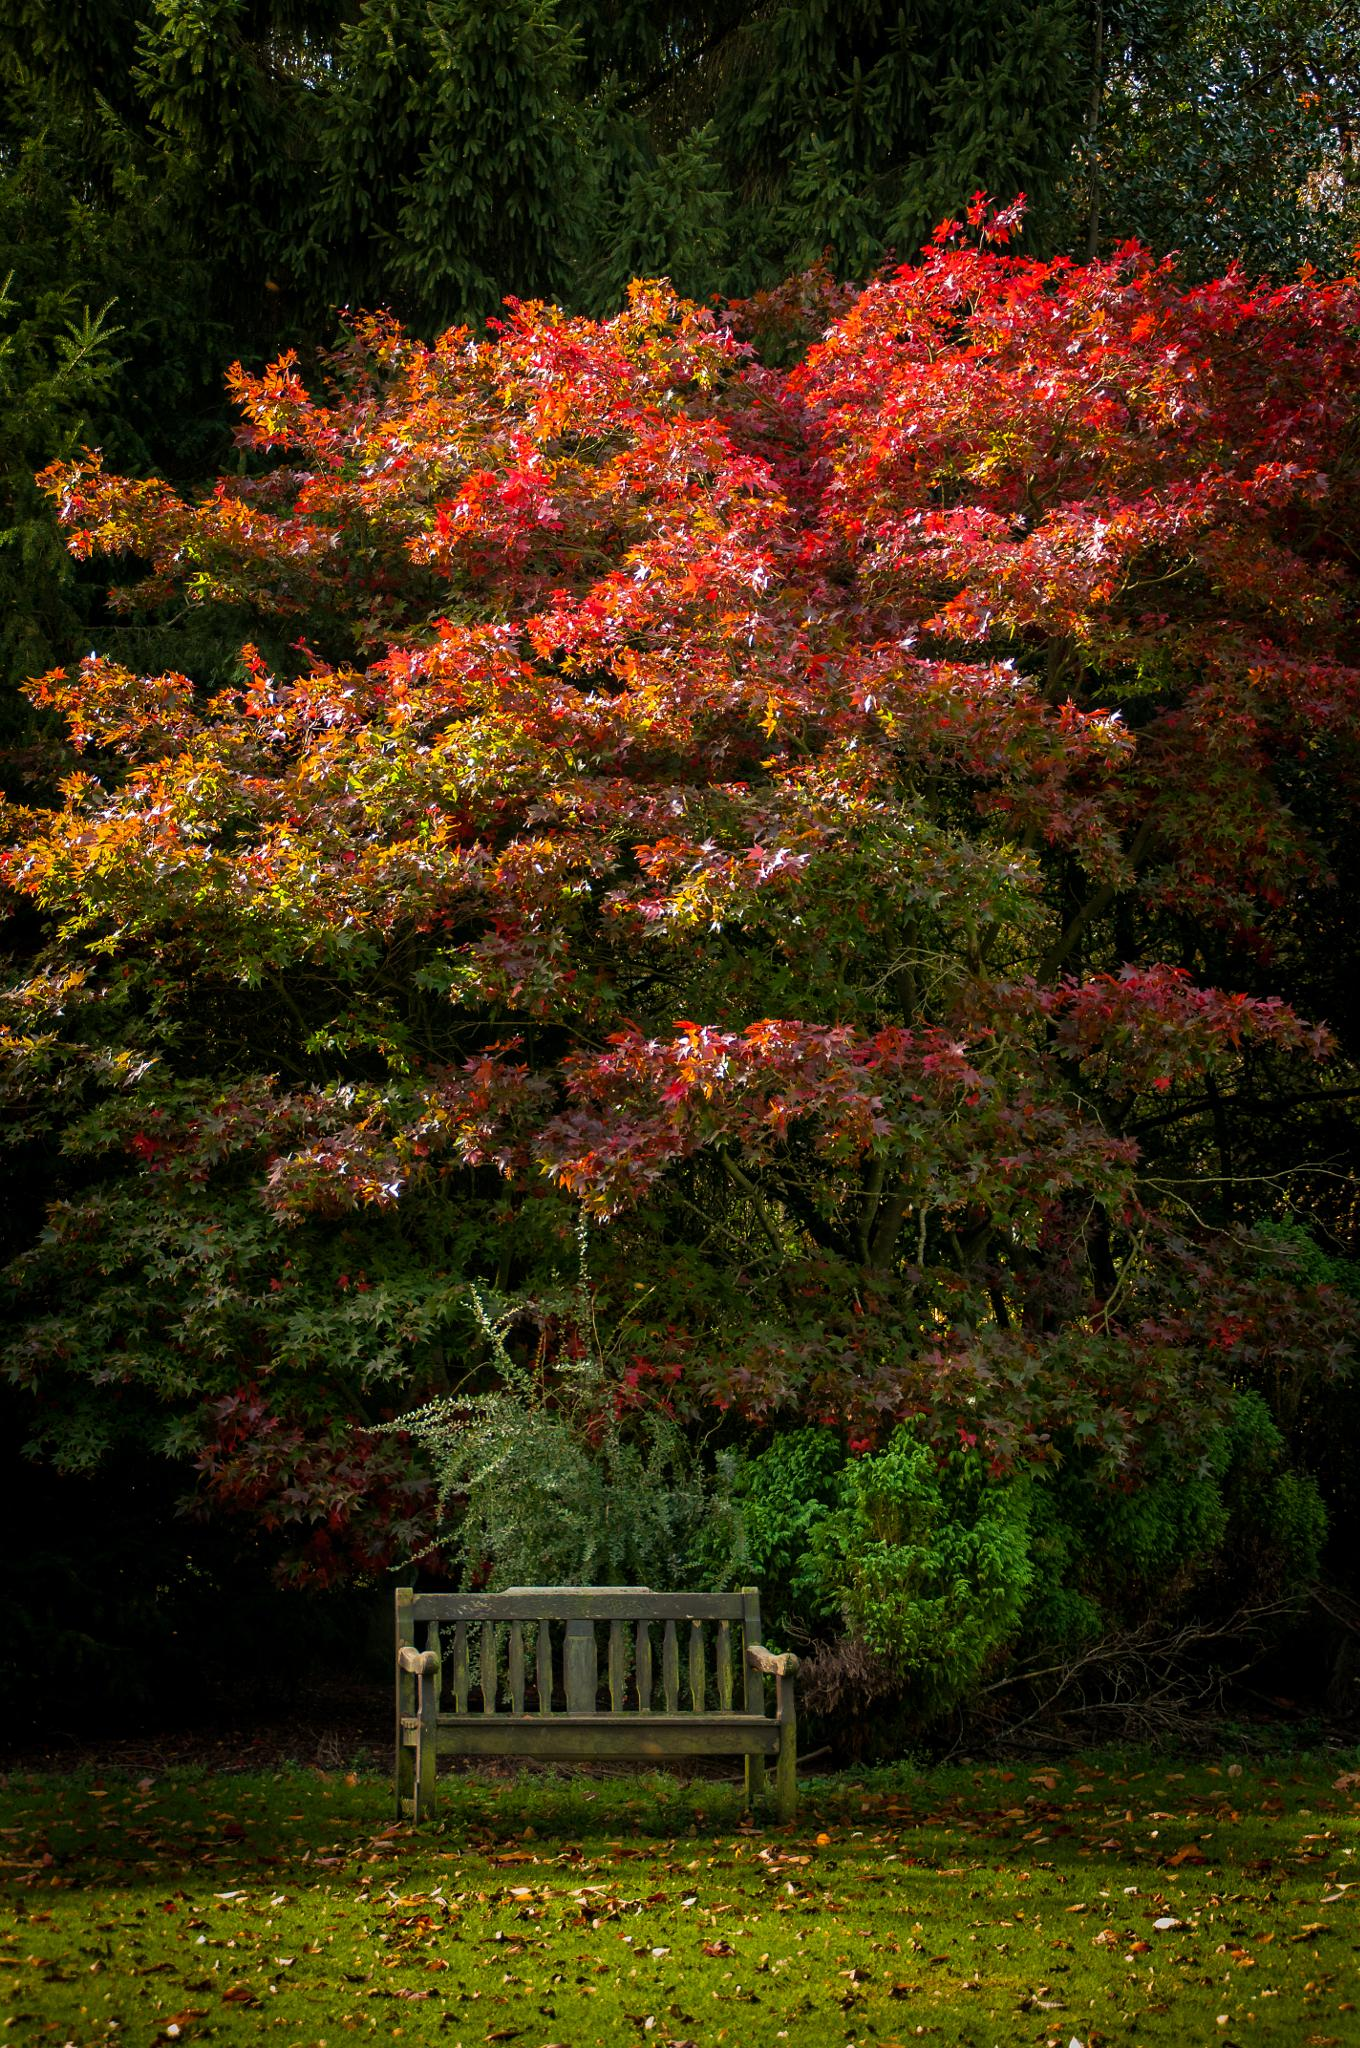 Park Bench with Autumn Colours by Darren Marshall